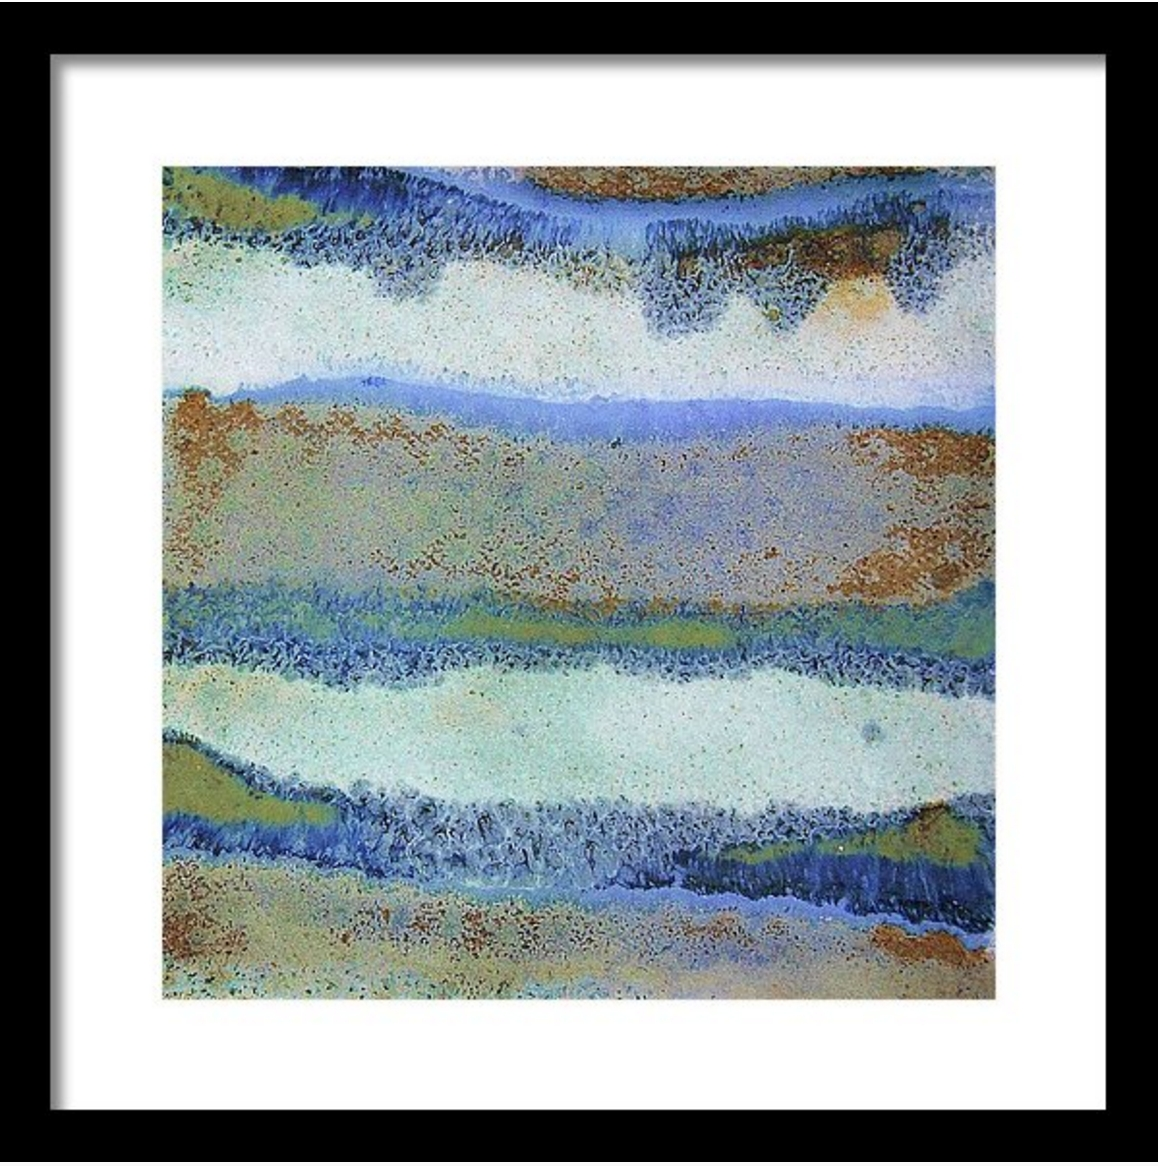 Abstract Framed Wall Art – Square #33 | Contemporary Frames Inside Most Current Abstract Framed Art Prints (View 4 of 15)